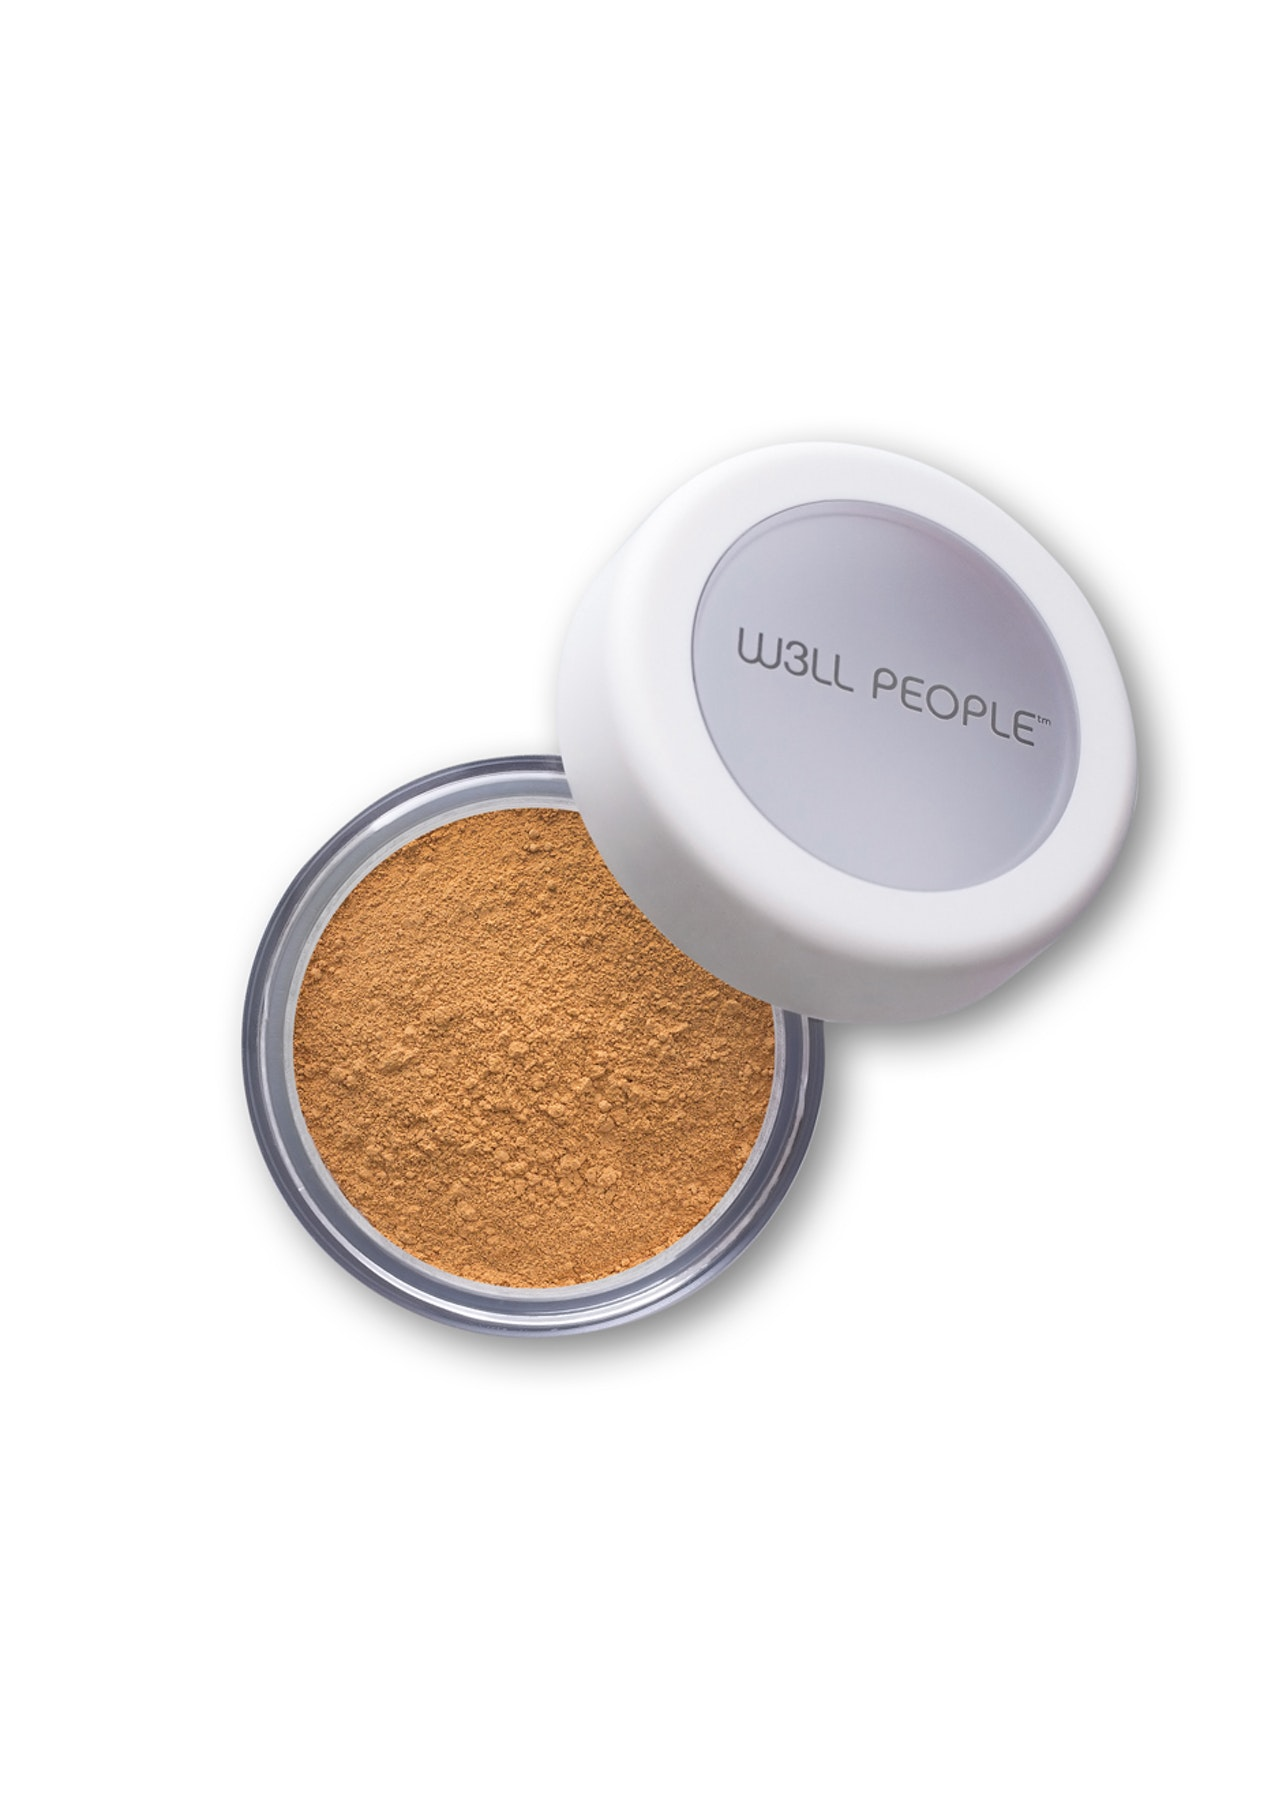 W3LL People - Altruist Satin Mineral Foundation 18 Dark Gold - W3LL People Organic Makeup - Onceit